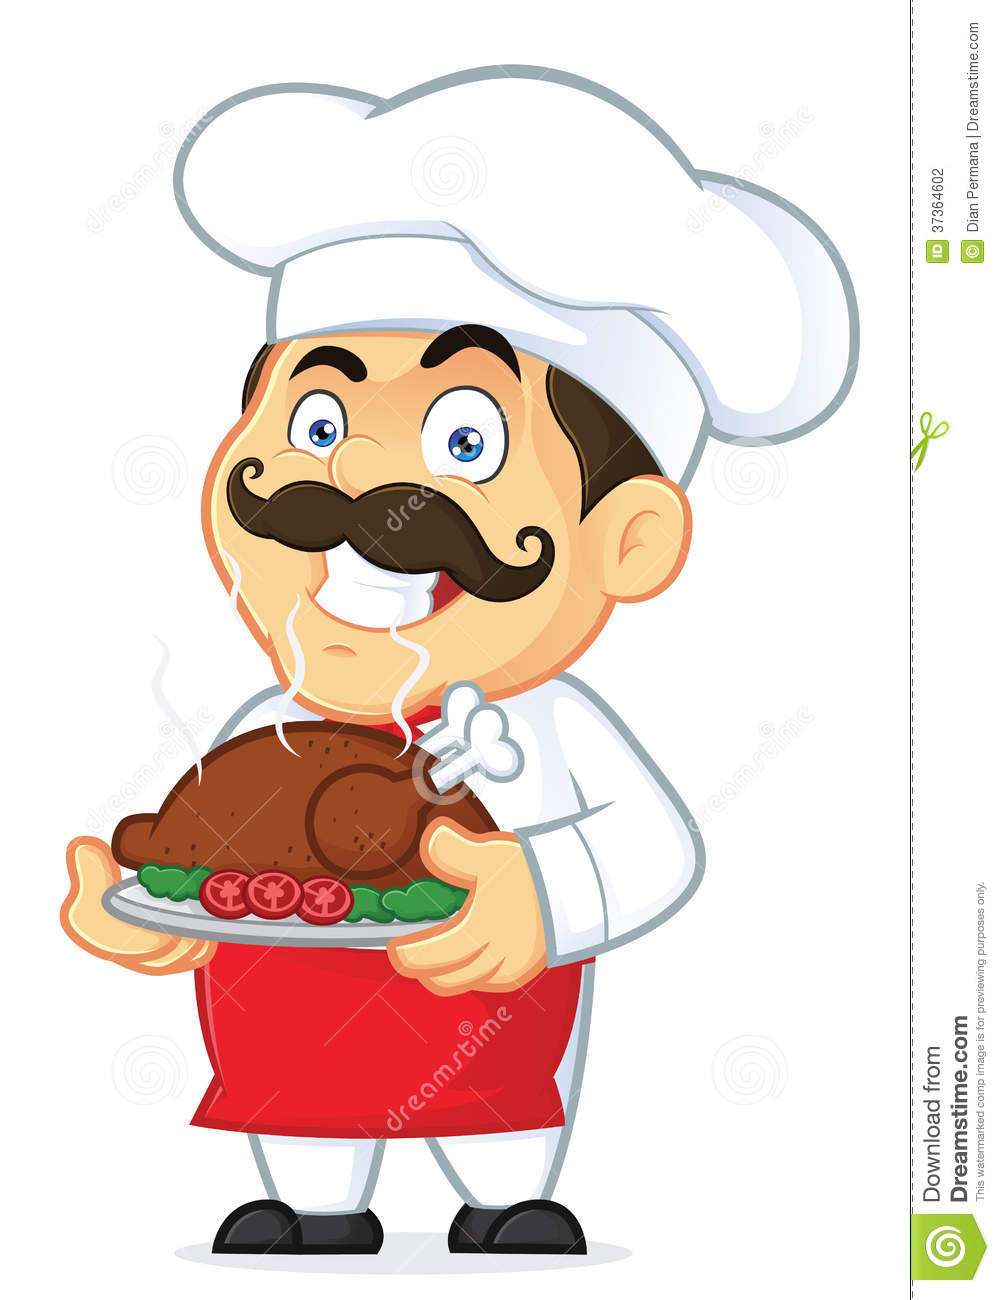 hight resolution of clipart picture of a chef cartoon character holding a baked chicken